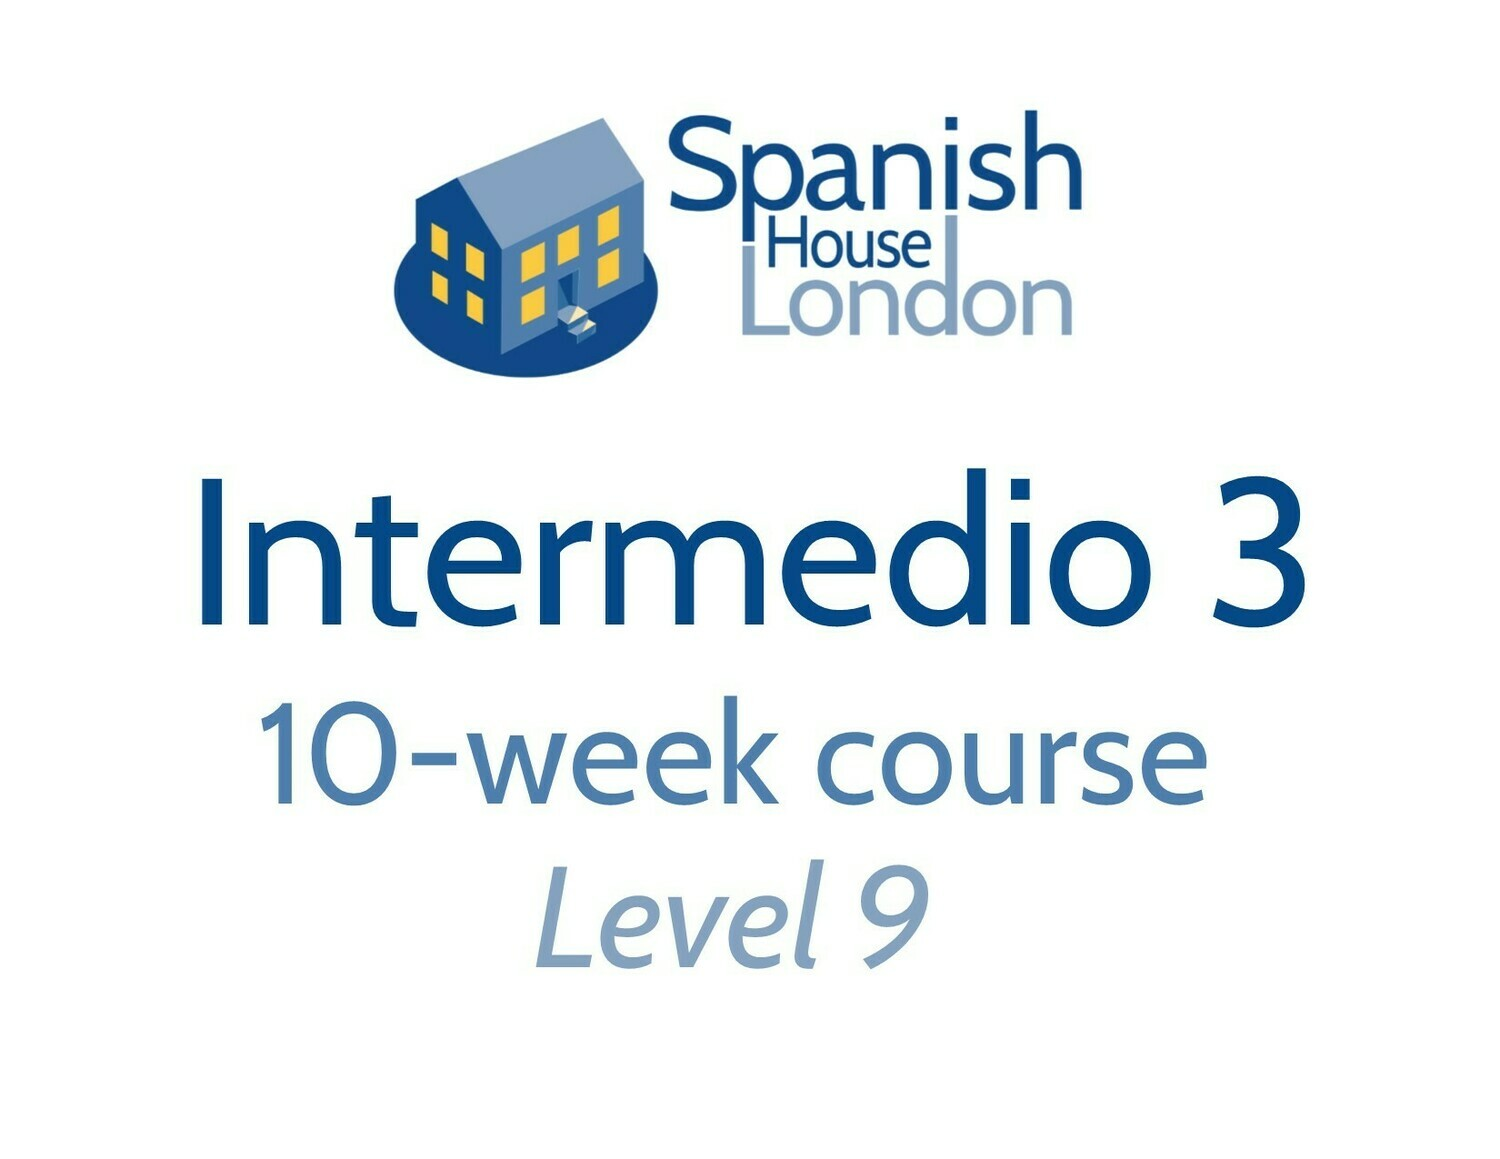 Intermedio 3 Course starting on 30th June at 7.30pm in Clapham North